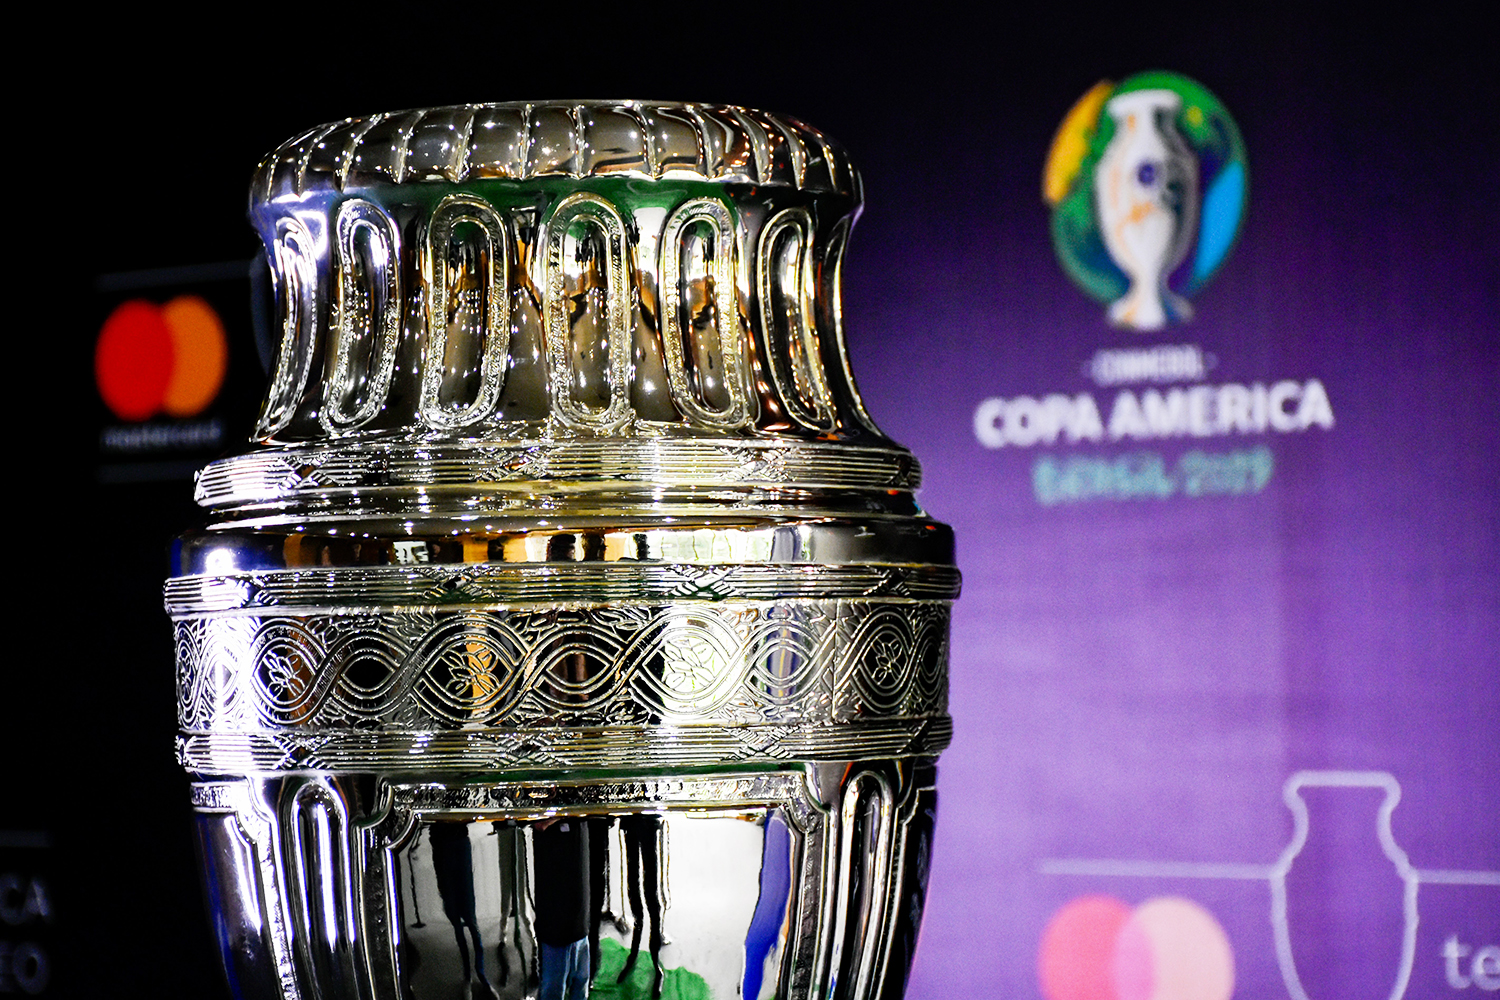 The Copa America trophy in Colombia